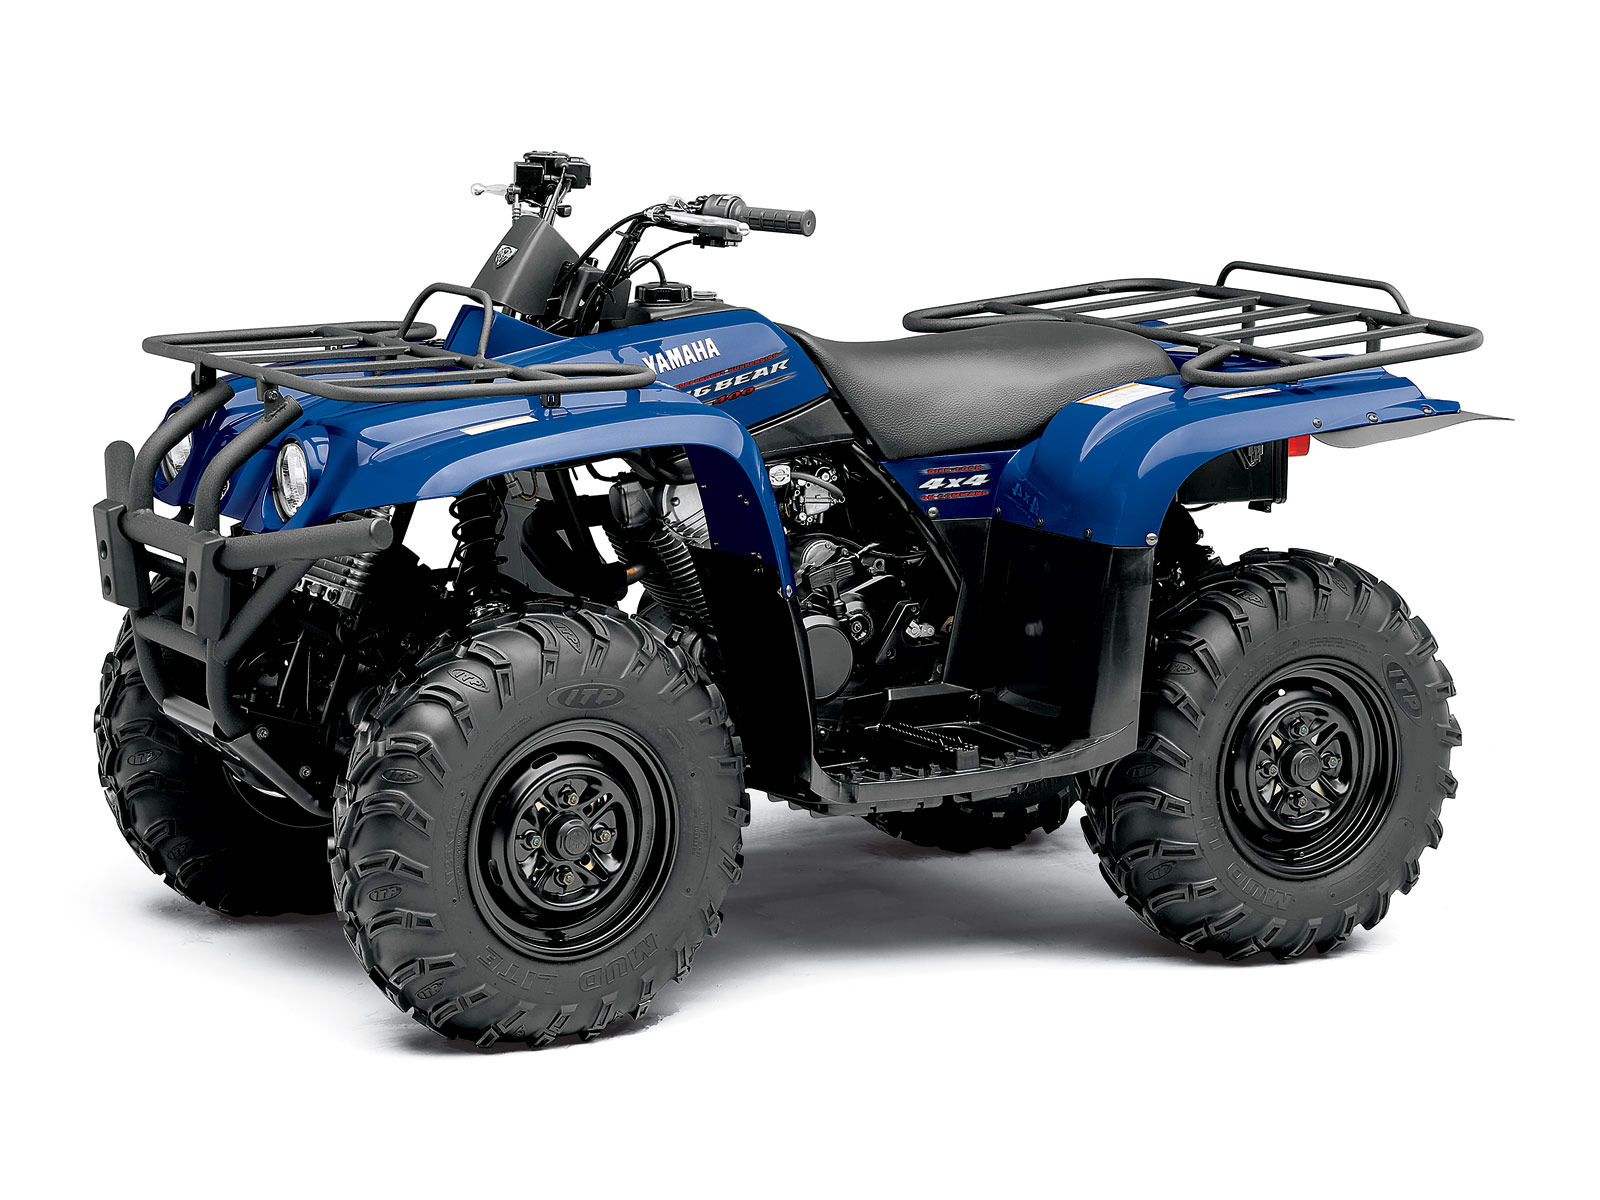 yamaha pictures 2010 big bear 400 atv specifications